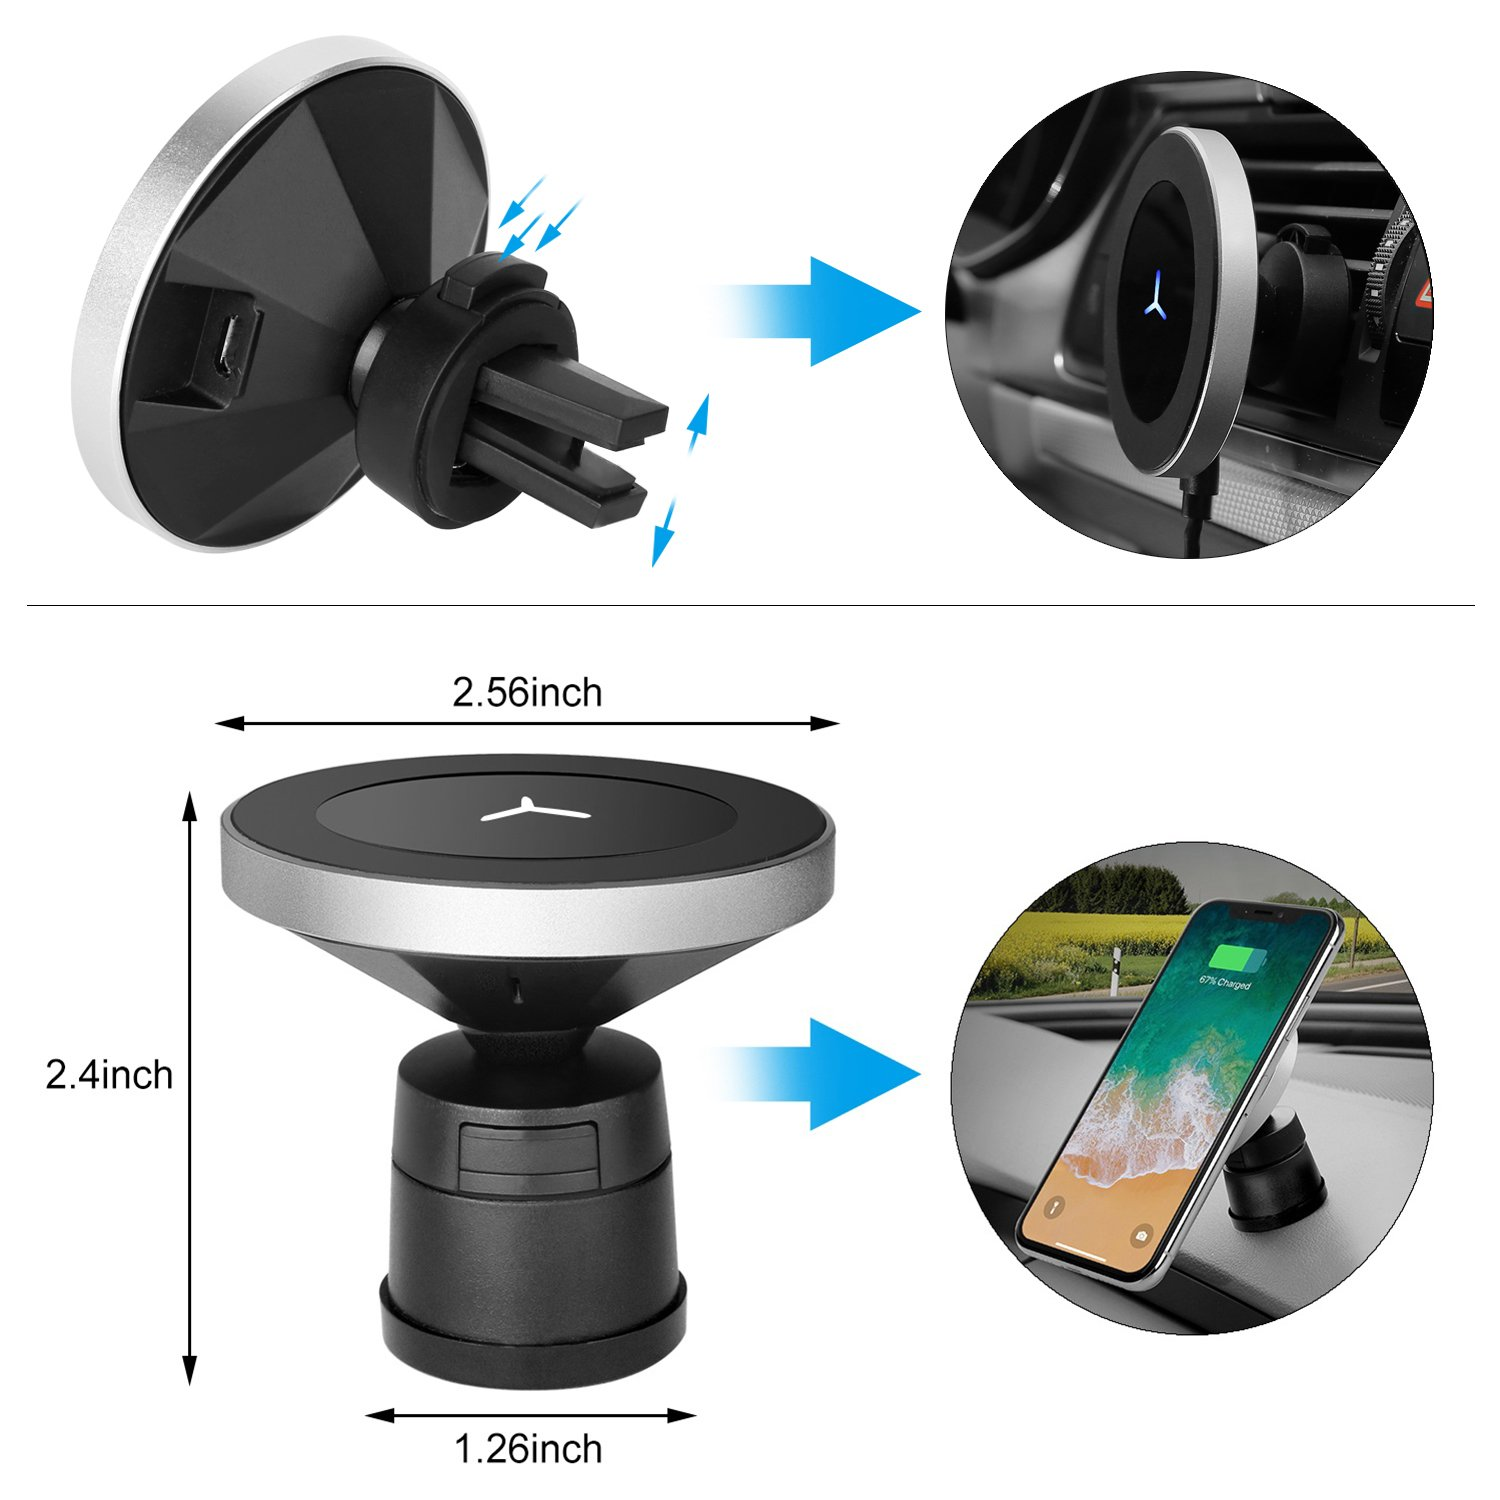 Qinoren Magnetic Wireless Car Charger Air Vent Phone Holder,Wireless Charging for Samsung S9/S9+/S8/S8+/S7/S7 Edge Note 8、Apple iPhone X/8/8 Plus and All QI-Enabled Devices(No Car Charger) by Qinoren (Image #4)